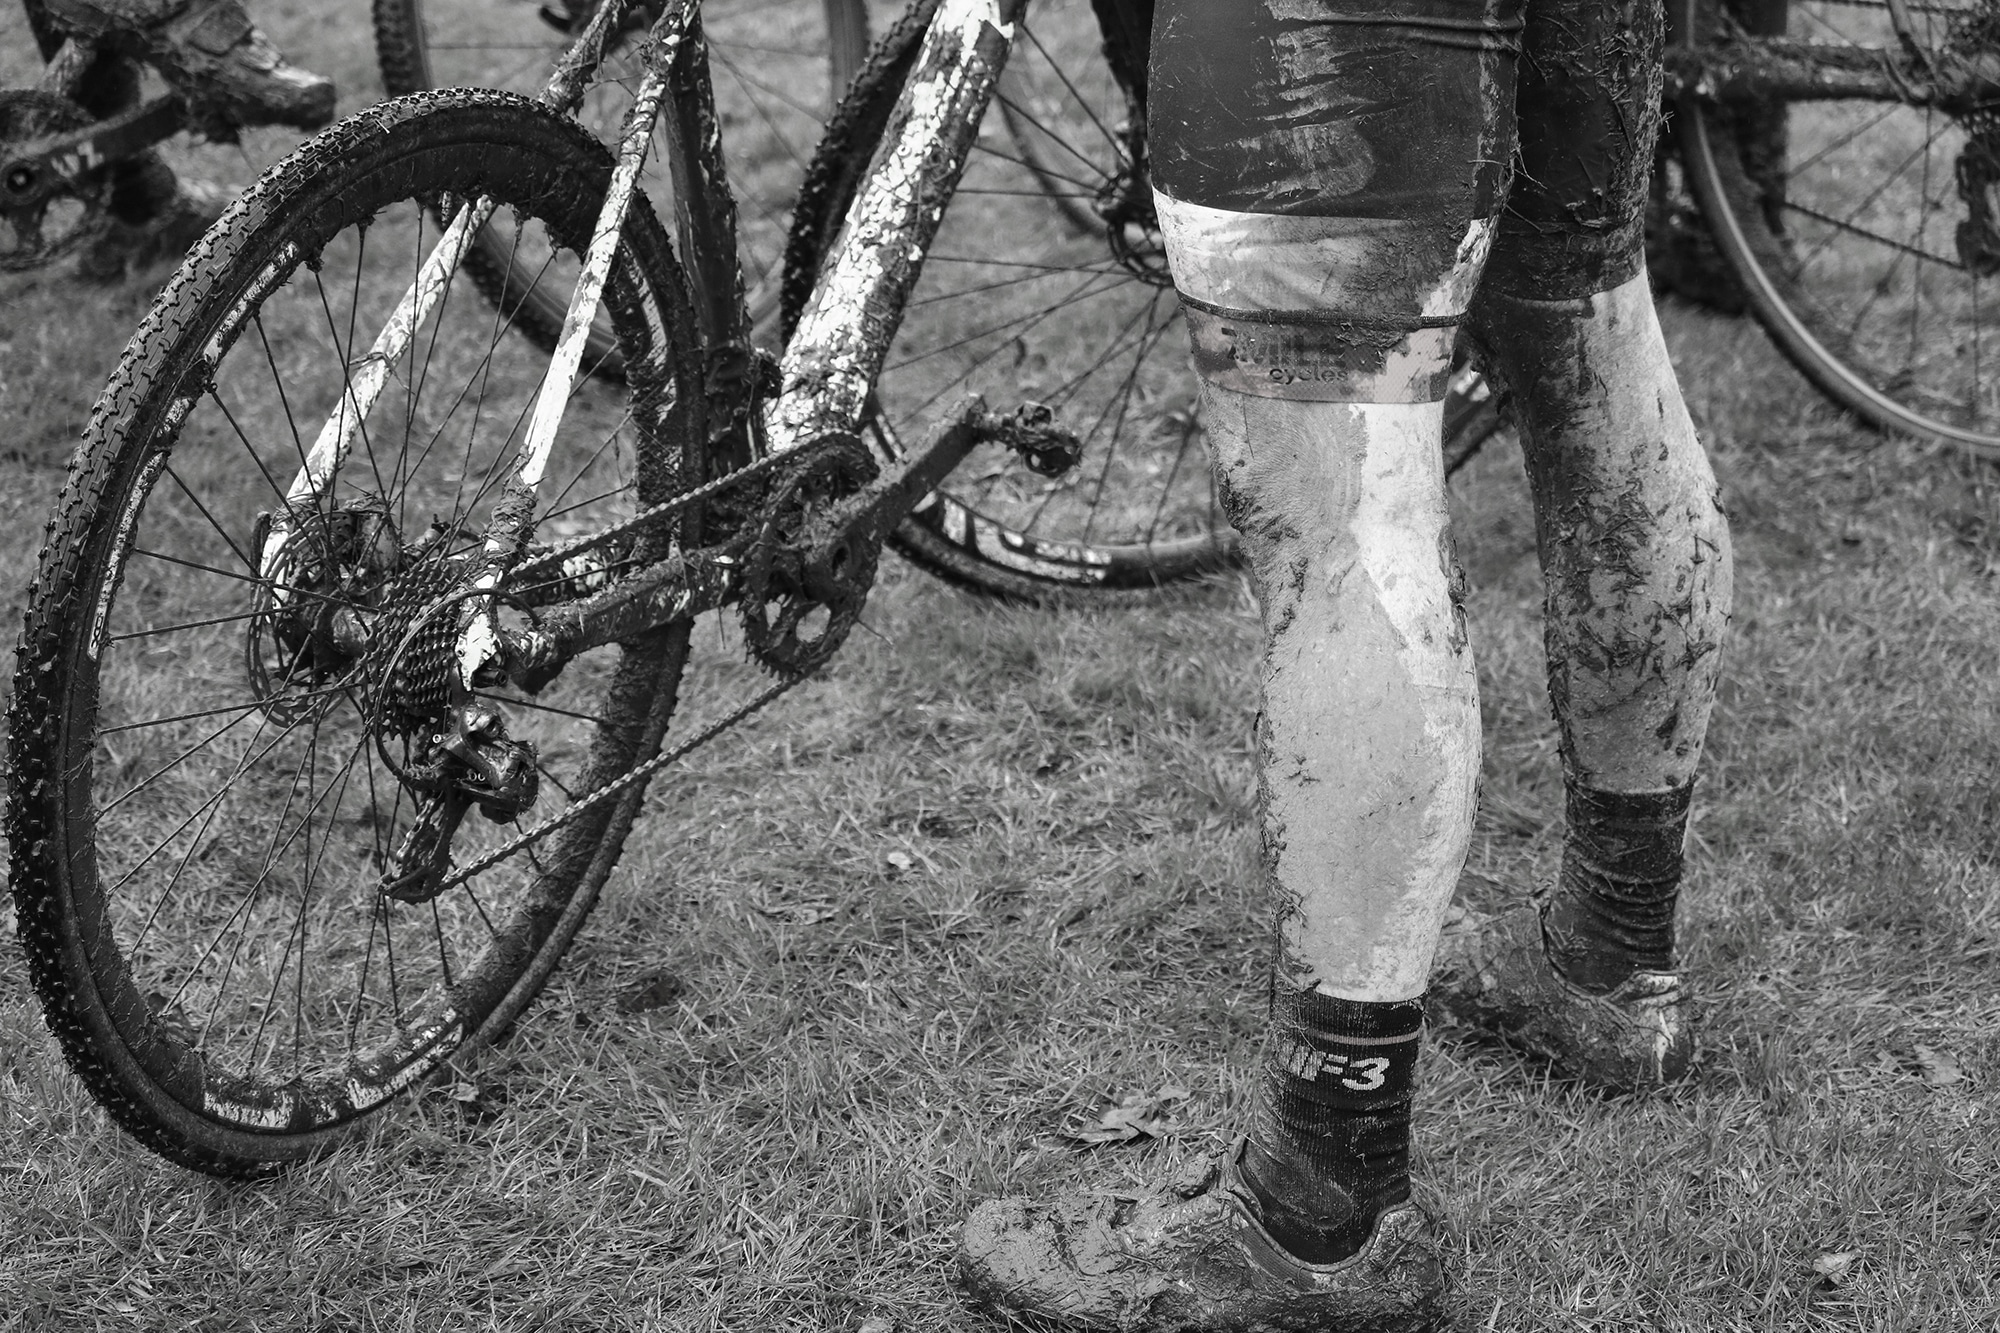 Muddy legs of Cyclocross Cyclist